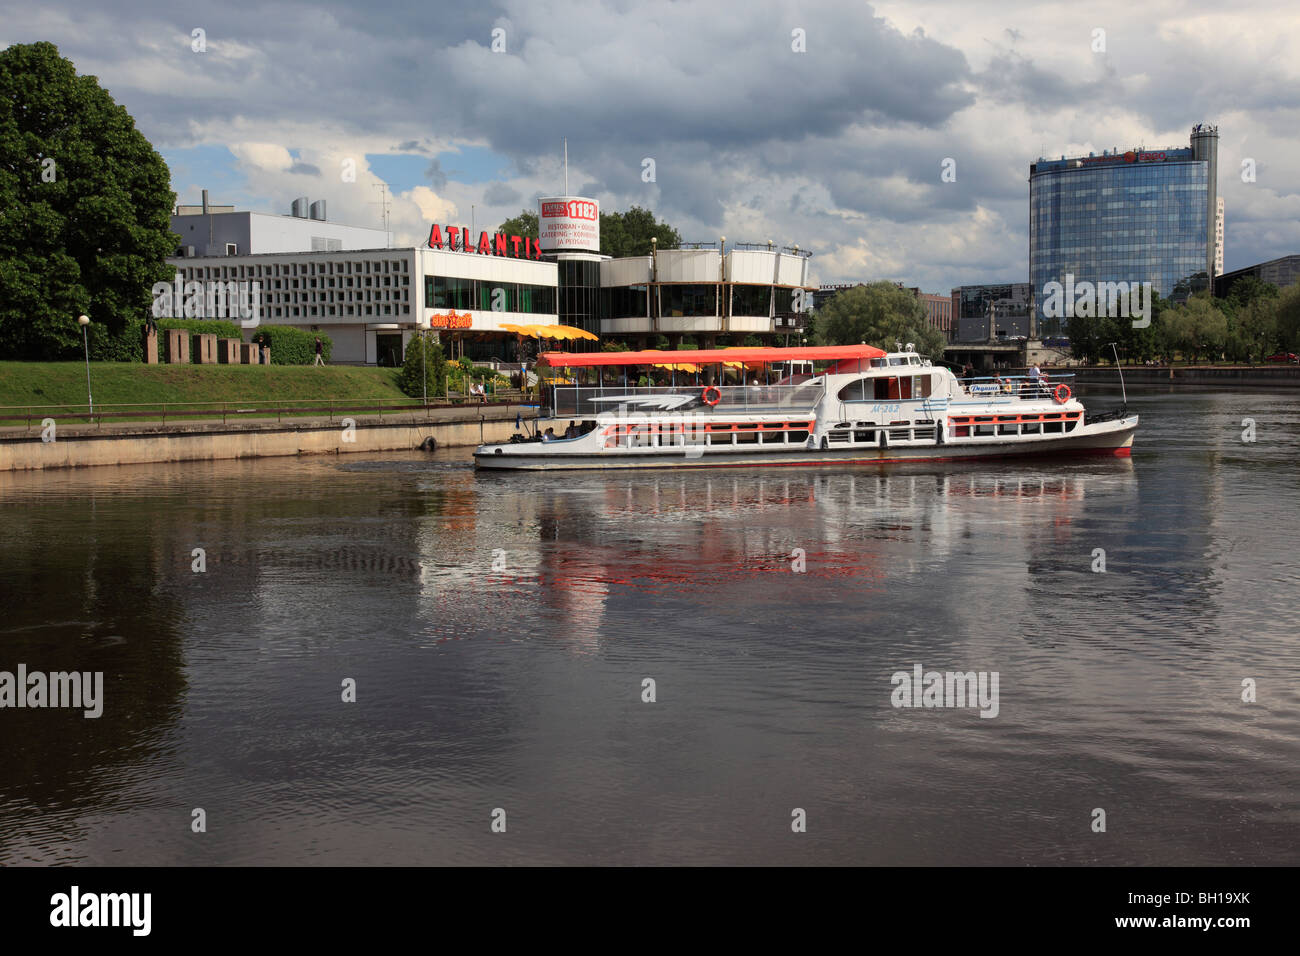 tourist boat on the river Emajogi at the city of Tartu, Estonia, Baltic State, Eastern Europe. Photo by Willy Matheisl - Stock Image